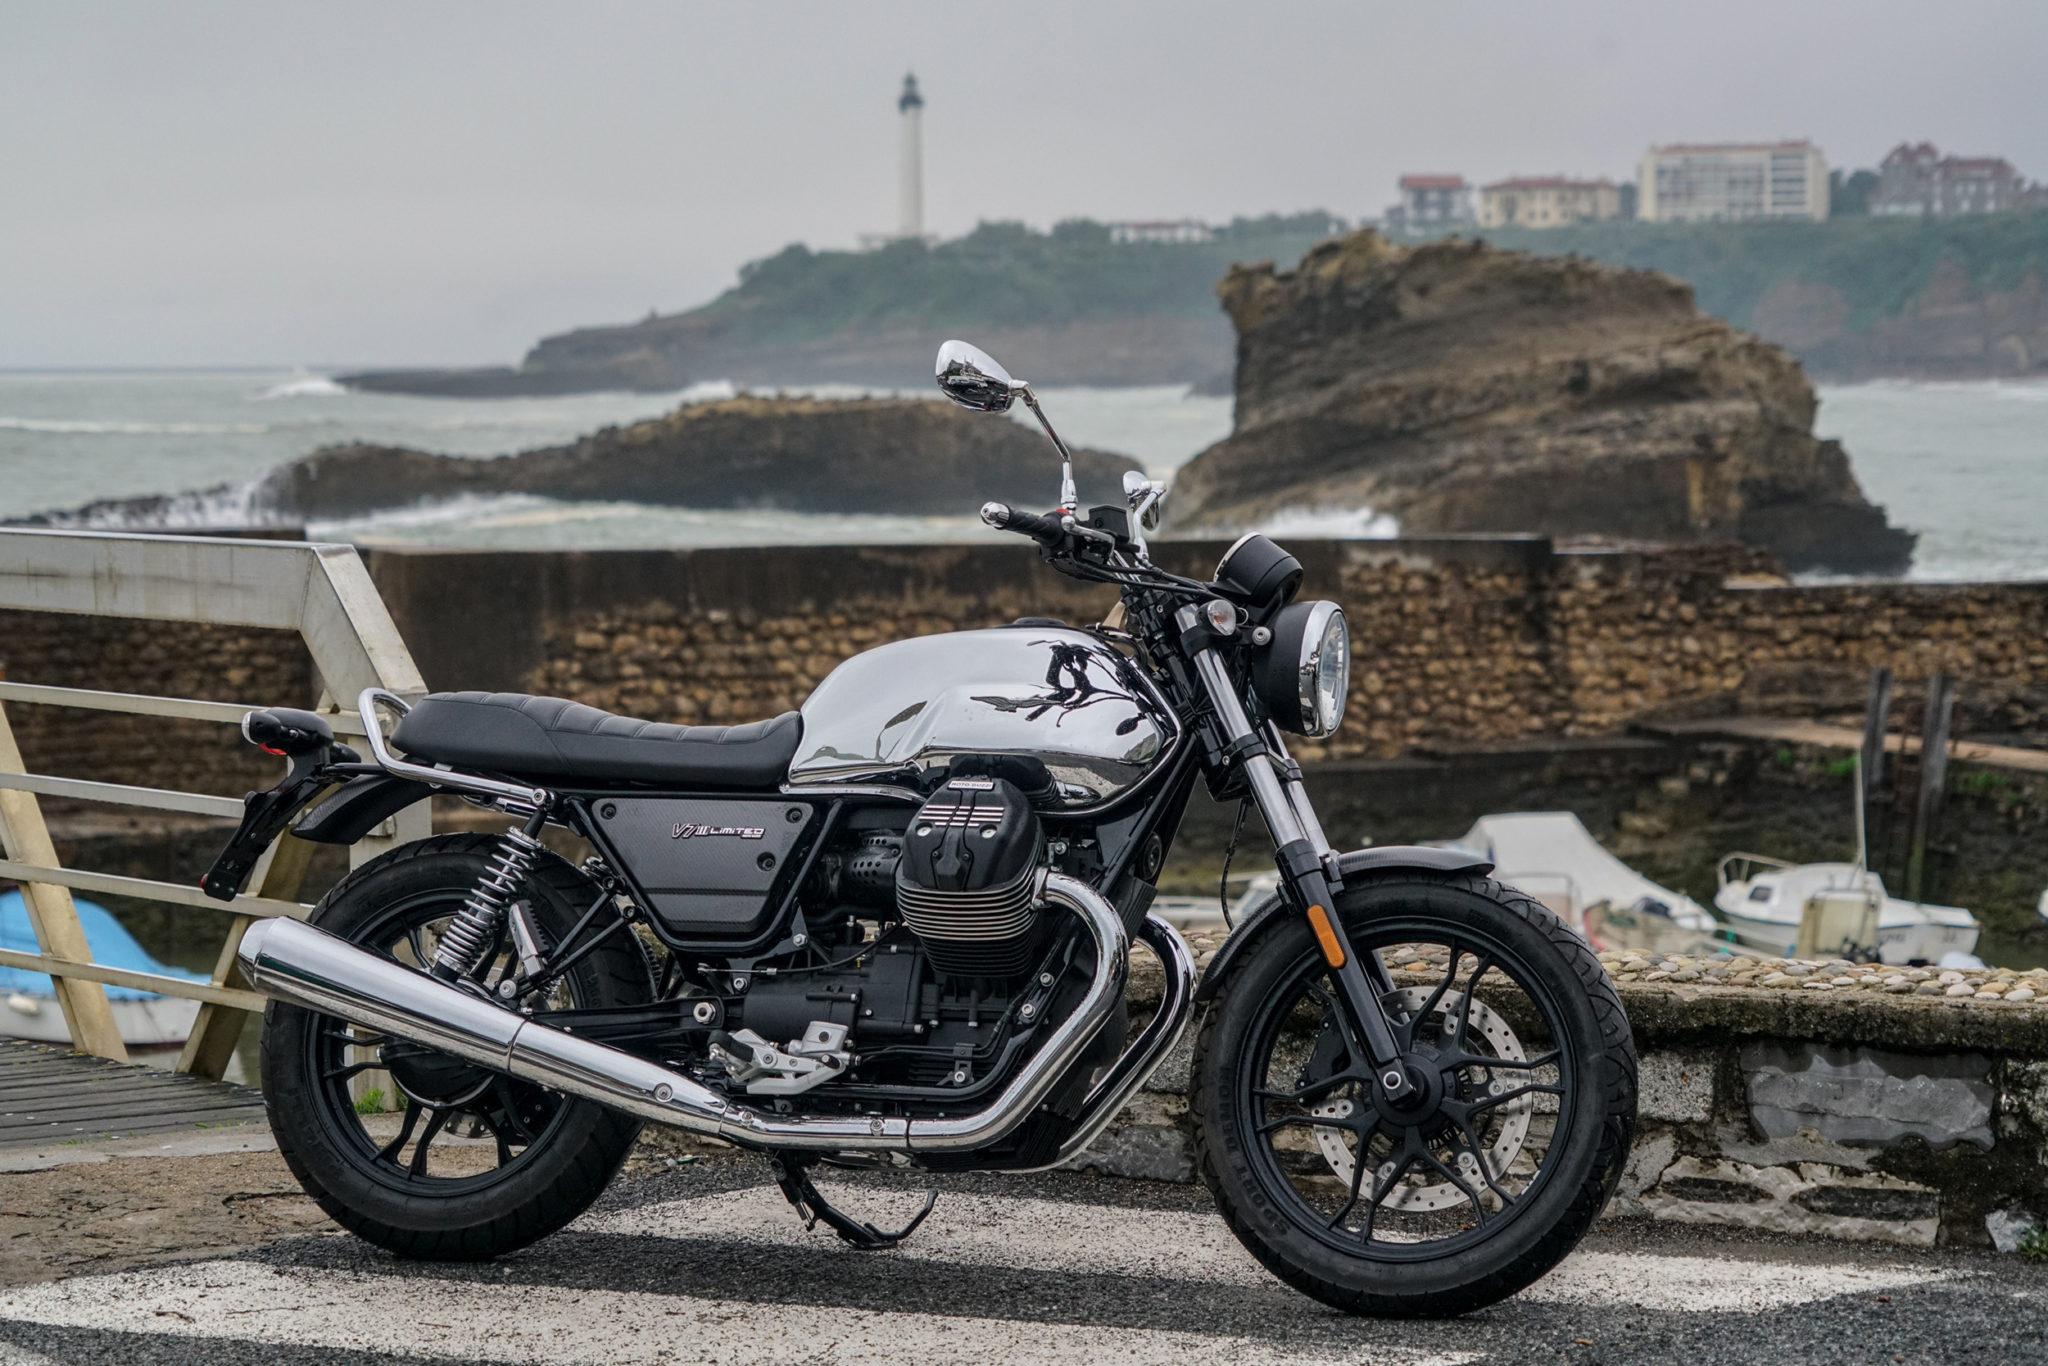 Moto Guzzi reveals the V7 III Limited at Wheels and Waves